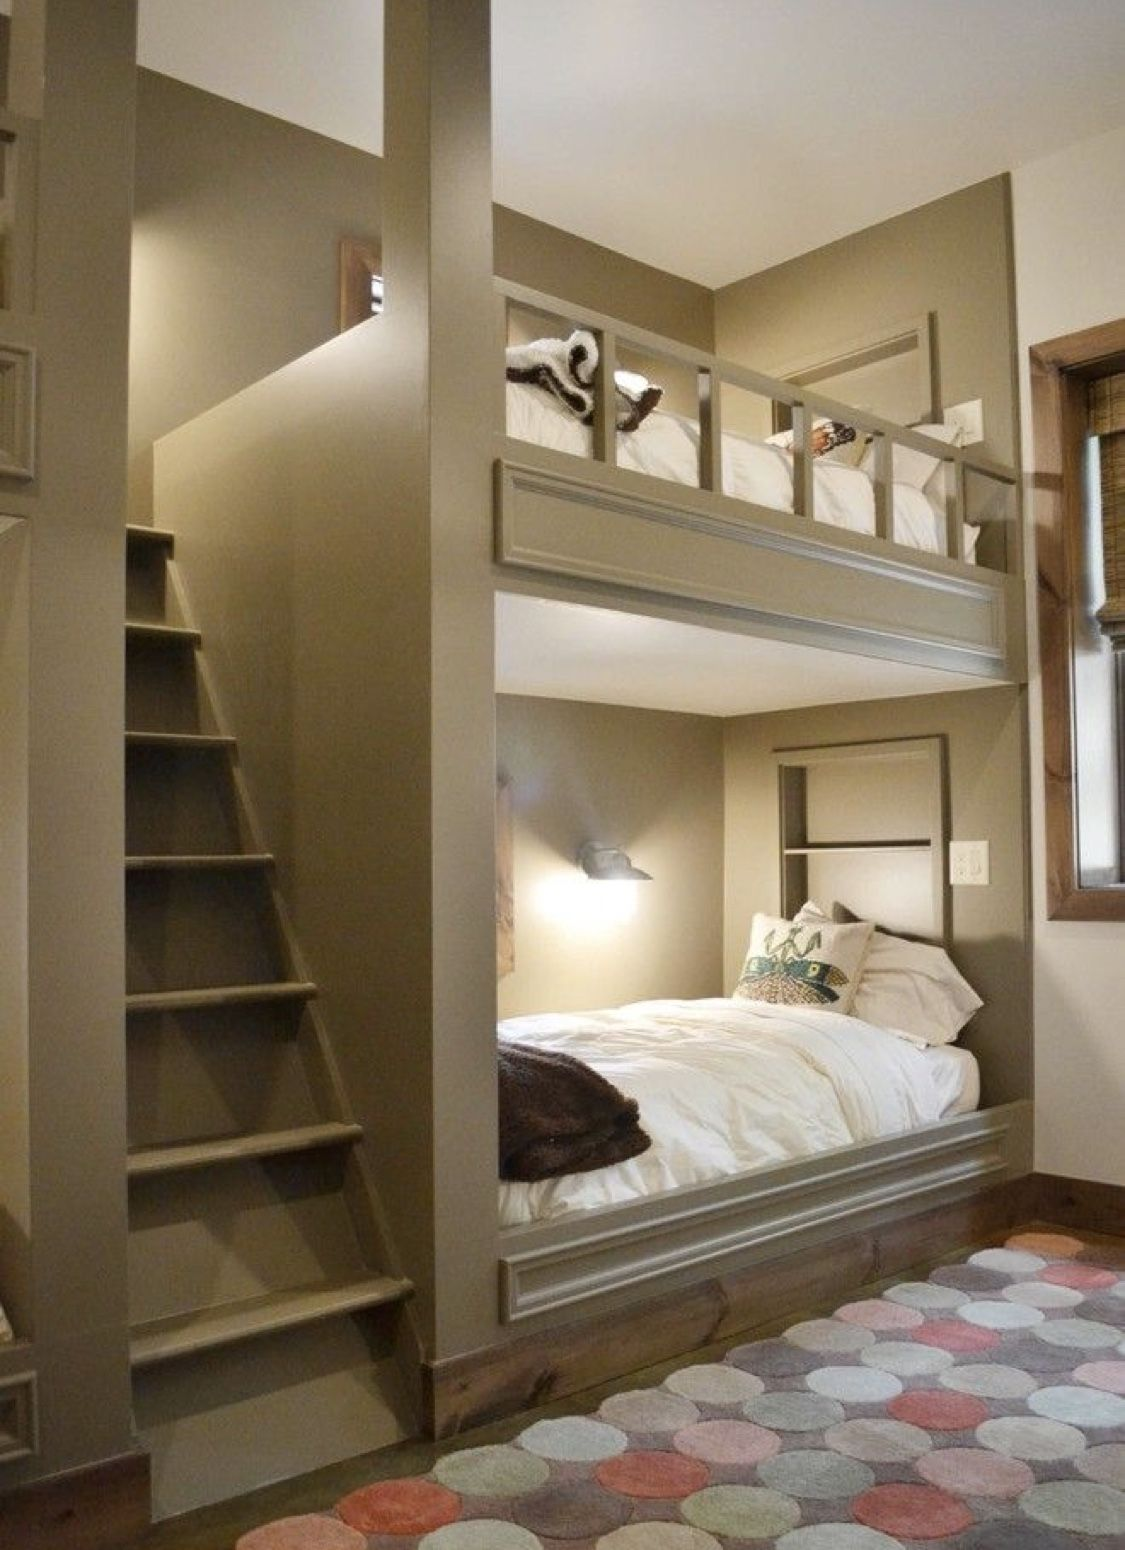 Loft bed with stairs diy  Pin by Sara Hurand on rb apartment  Pinterest  Bunk beds with